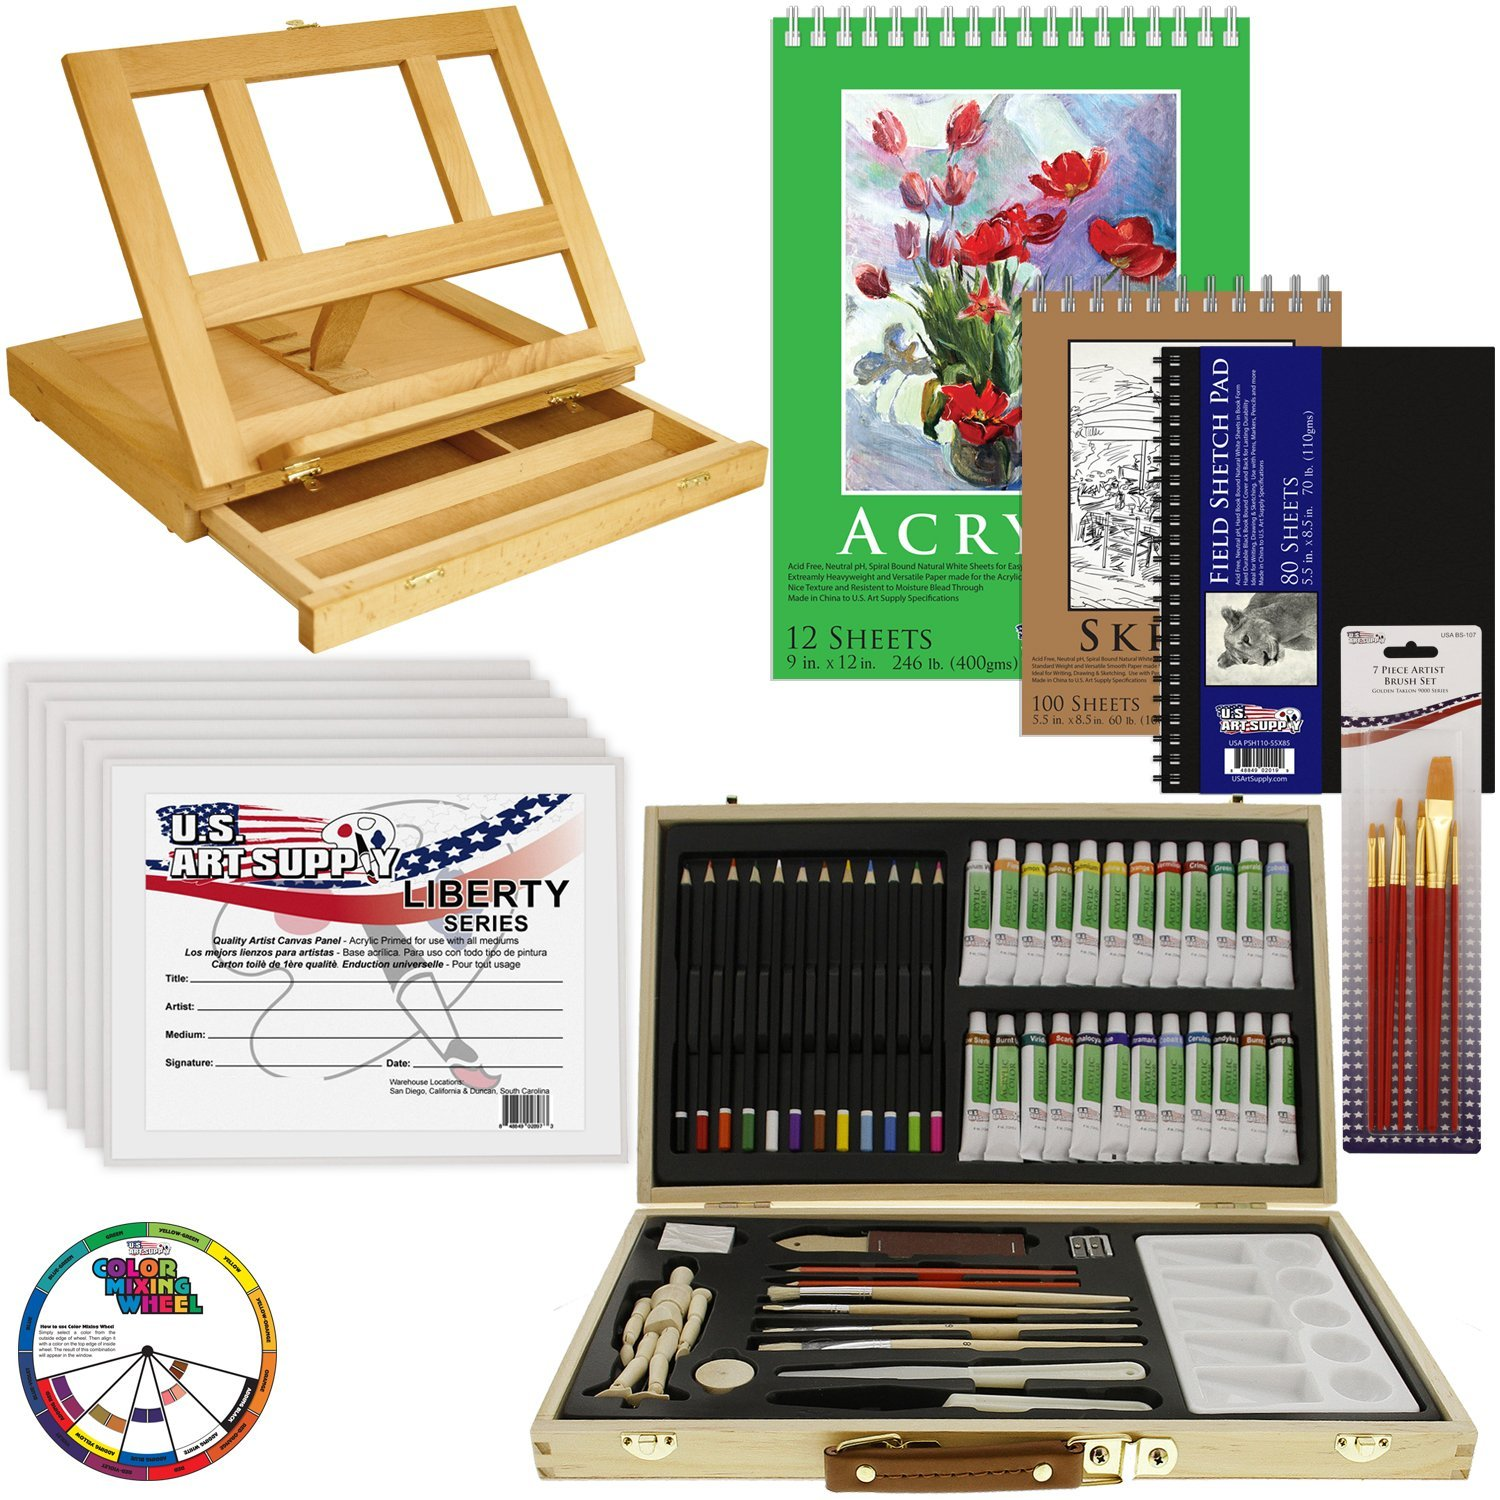 68pc Artist Acrylic Painting Set - Wood Table Easel, Paint, Canvas ...